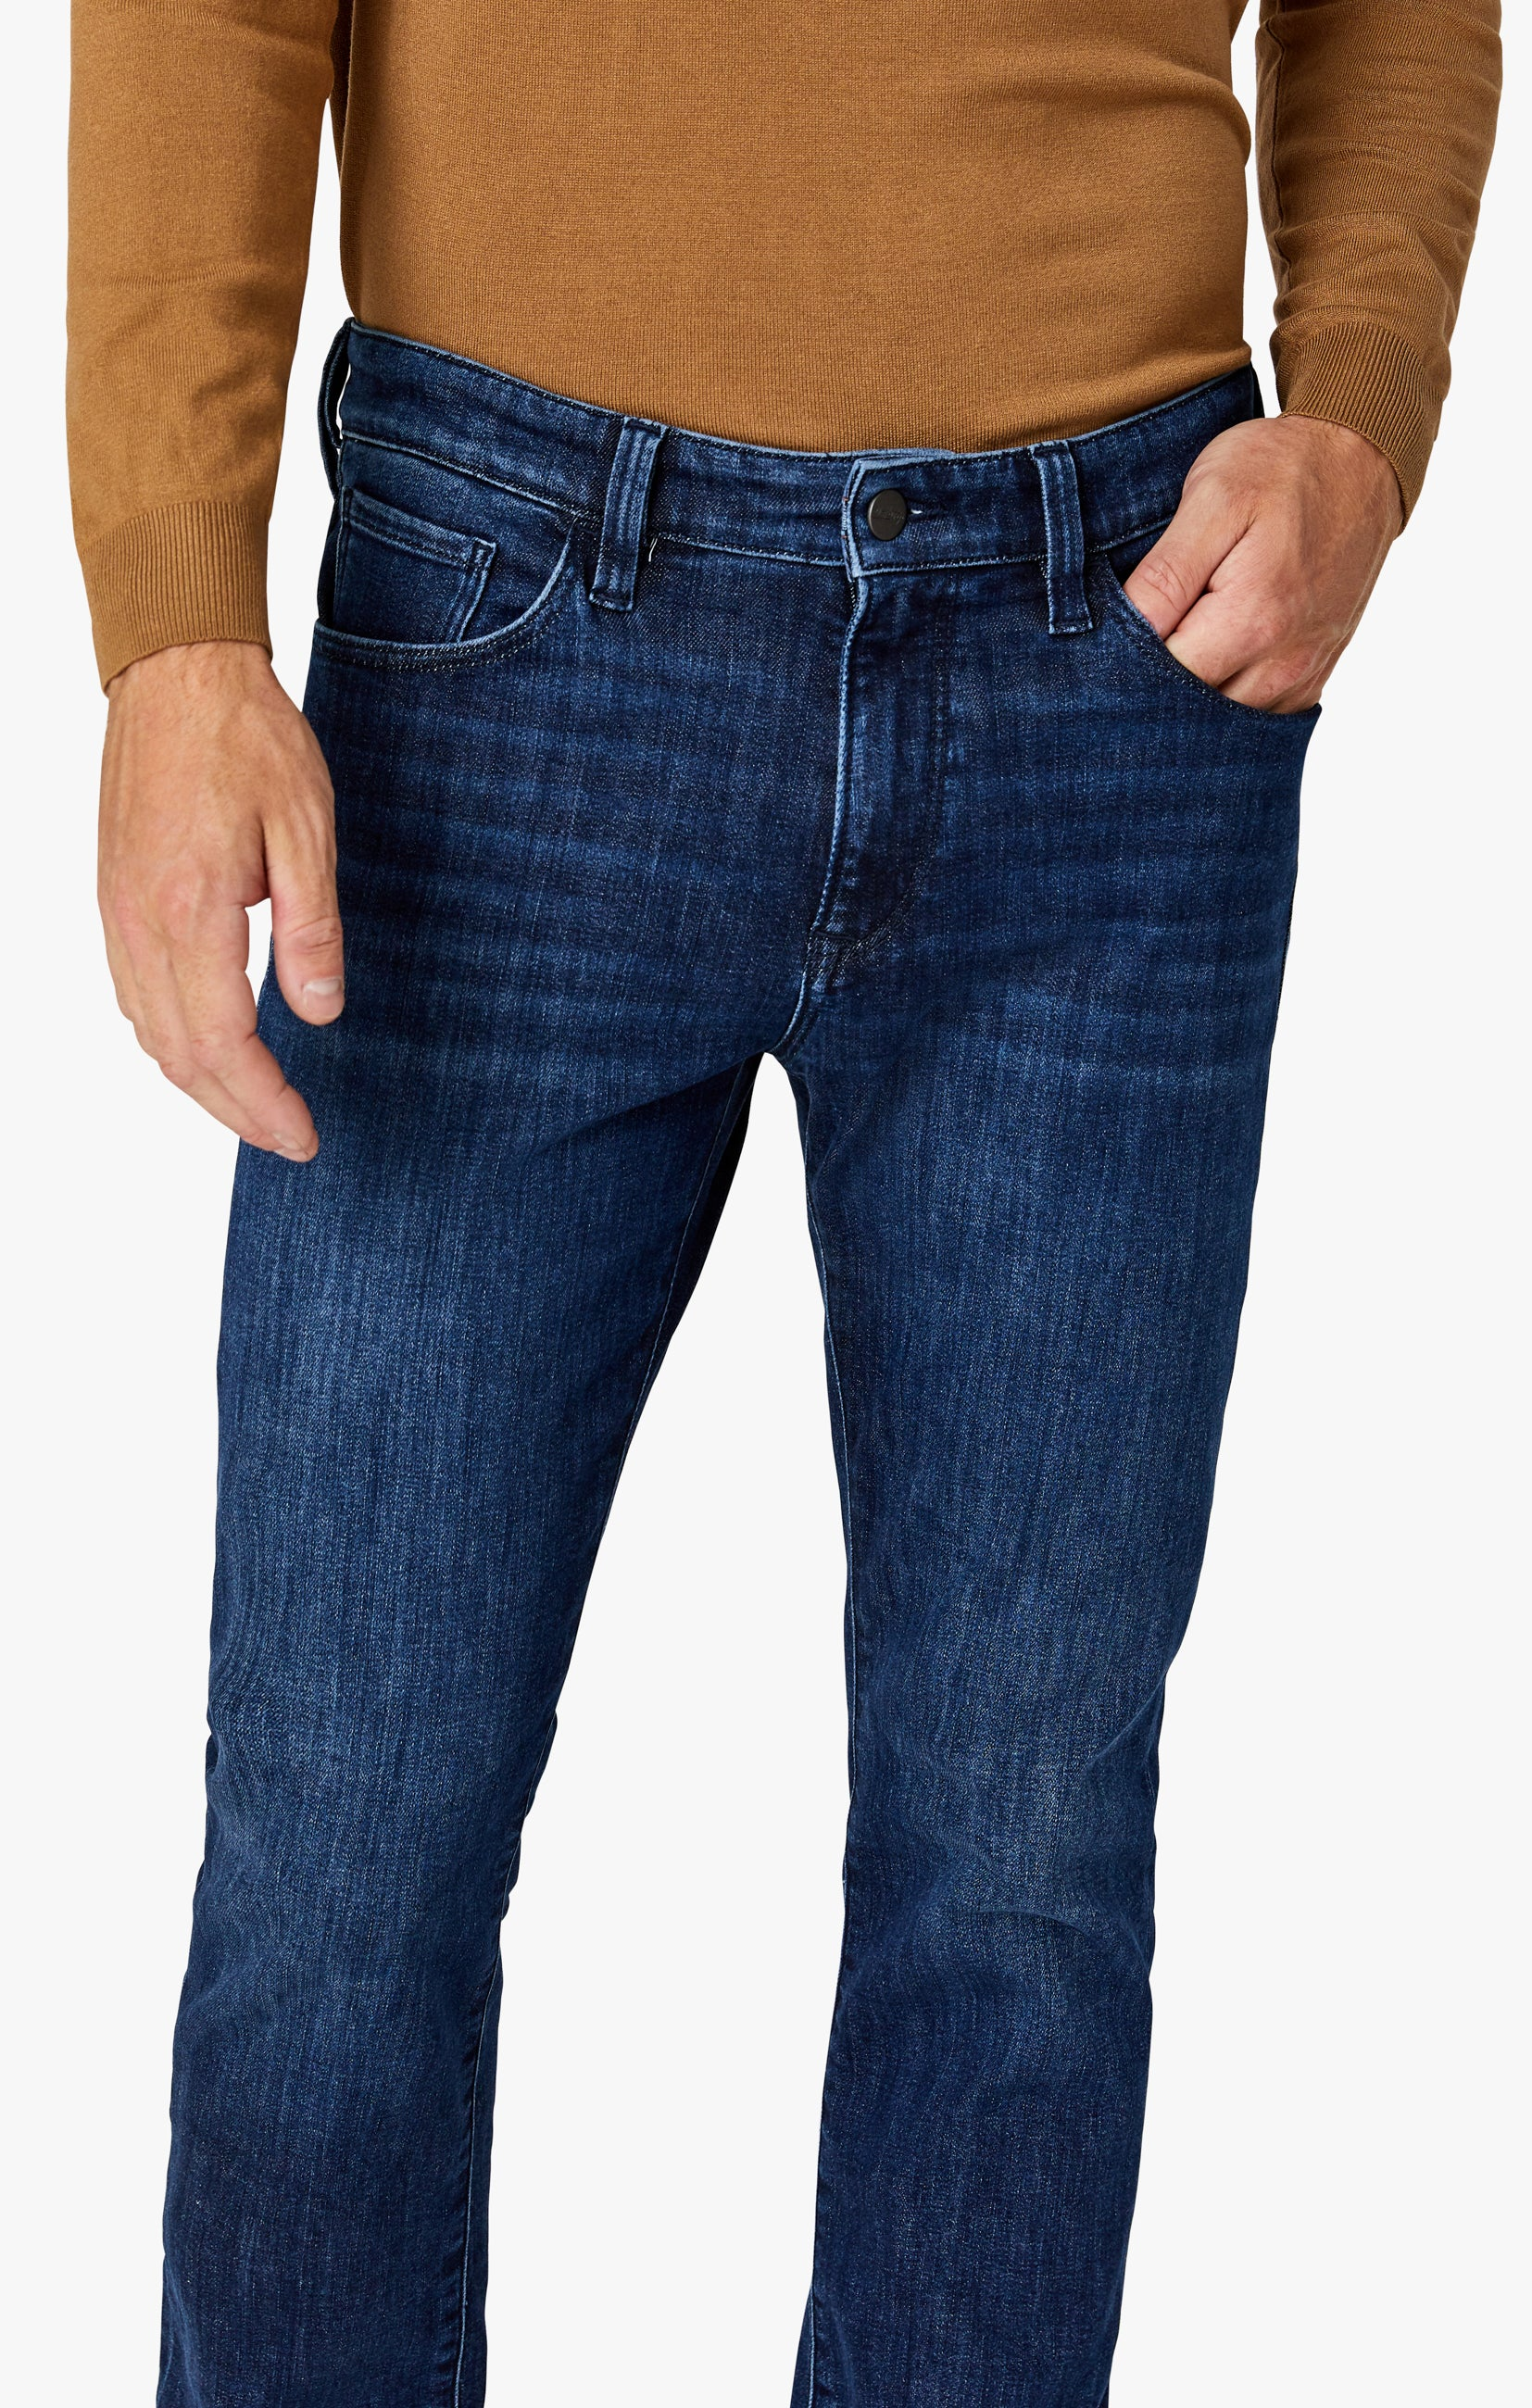 Charisma Classic Fit Jeans in Dark Coolmax Image 1